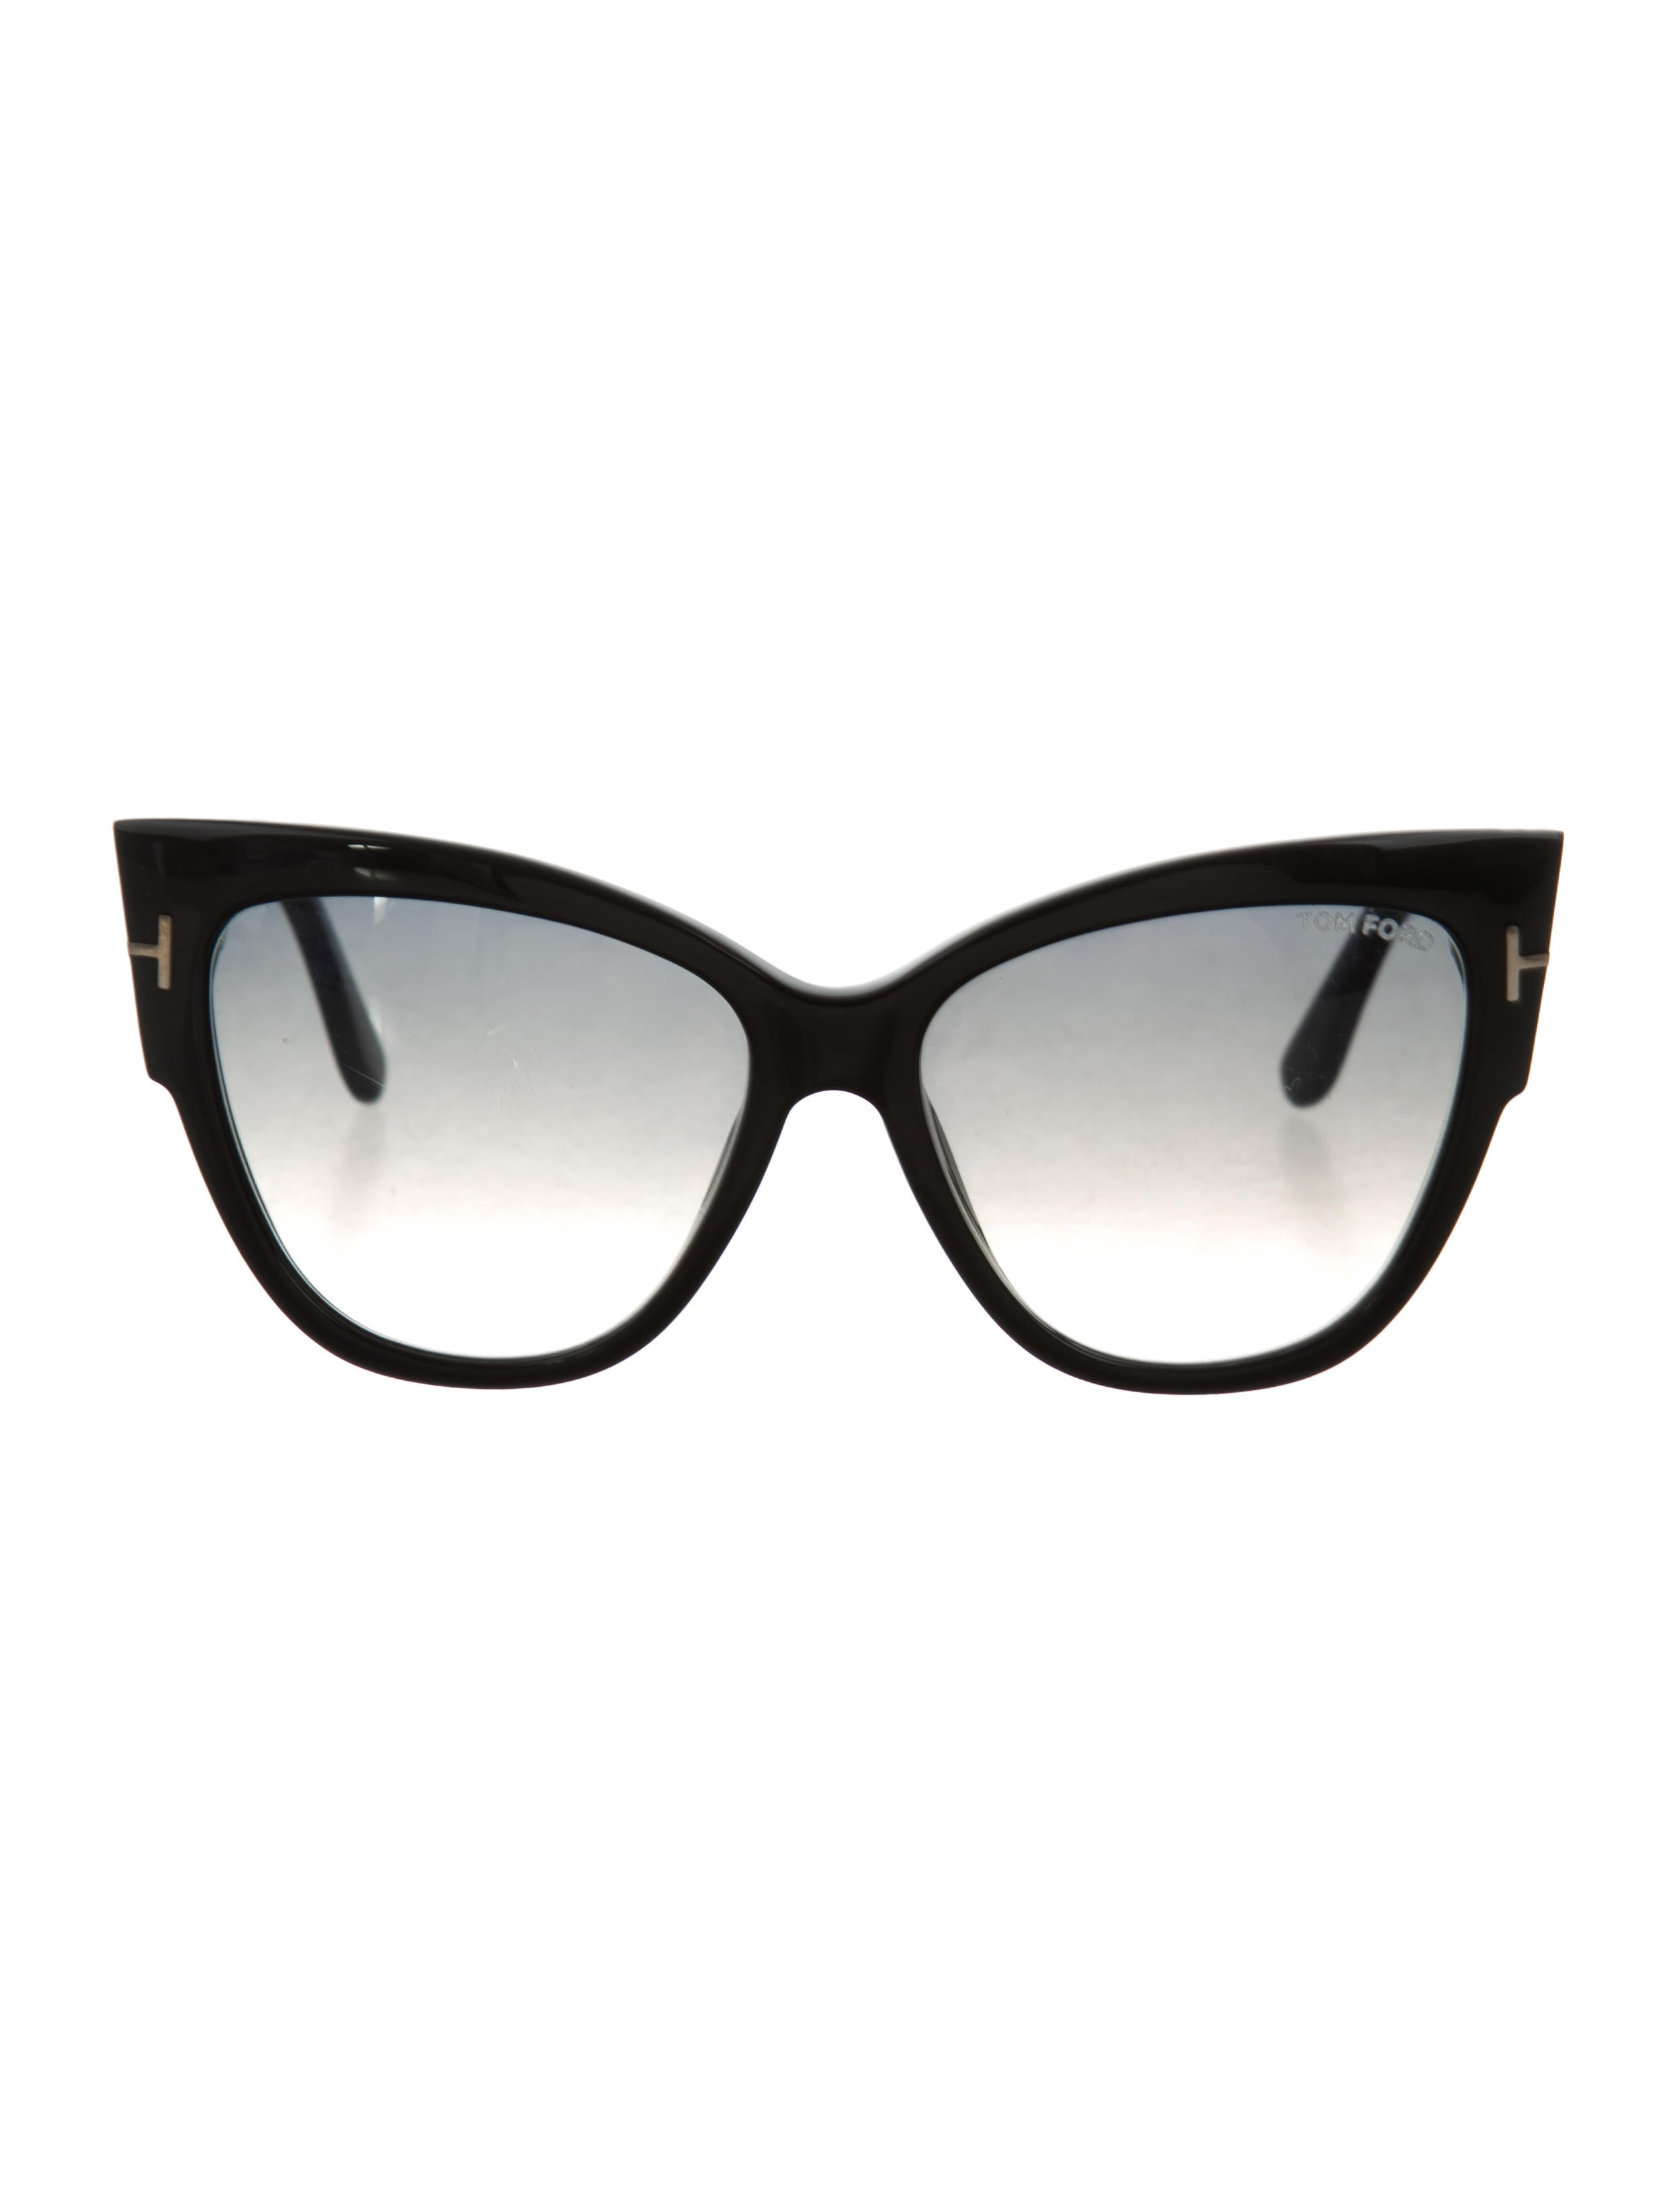 8fe8fa4be0 Women · Accessories  Tom Ford Anoushka Cat-Eye Sunglasses. Anoushka Cat-Eye  Sunglasses